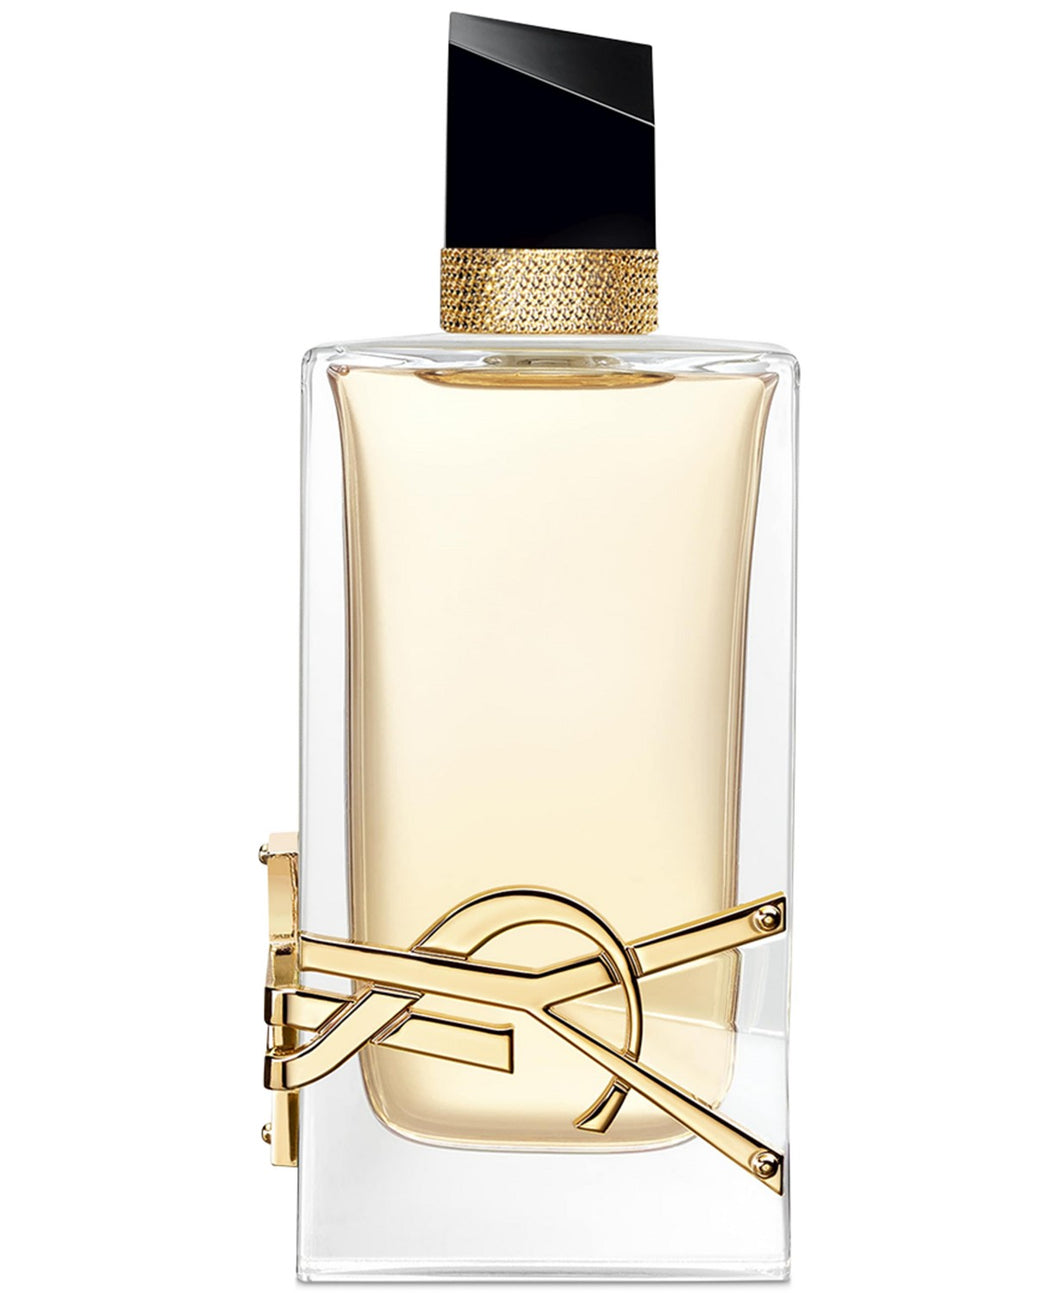 libre yvest saint laurent eau de parfum 3.0 oz 90ml-alwaysspecialgifts.com